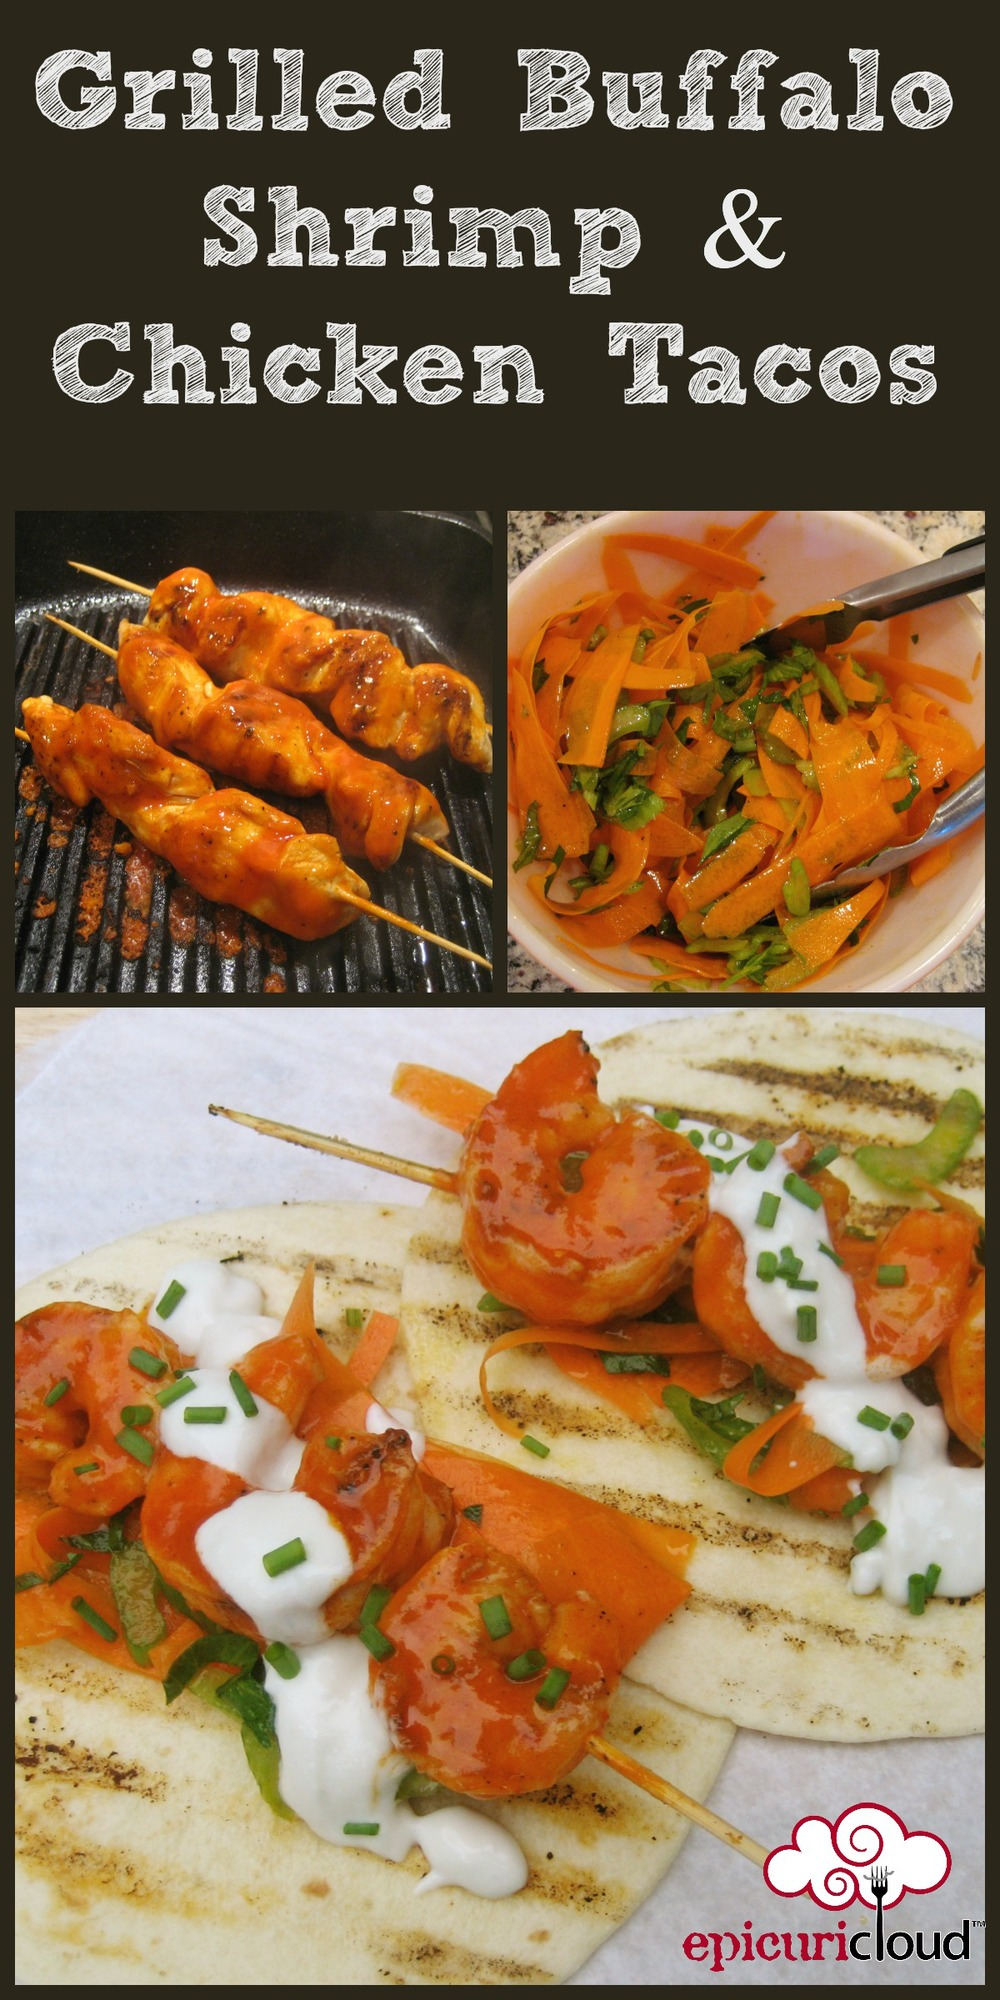 Grilled Buffalo Shrimp & Chicken Tacos - epicuricloud